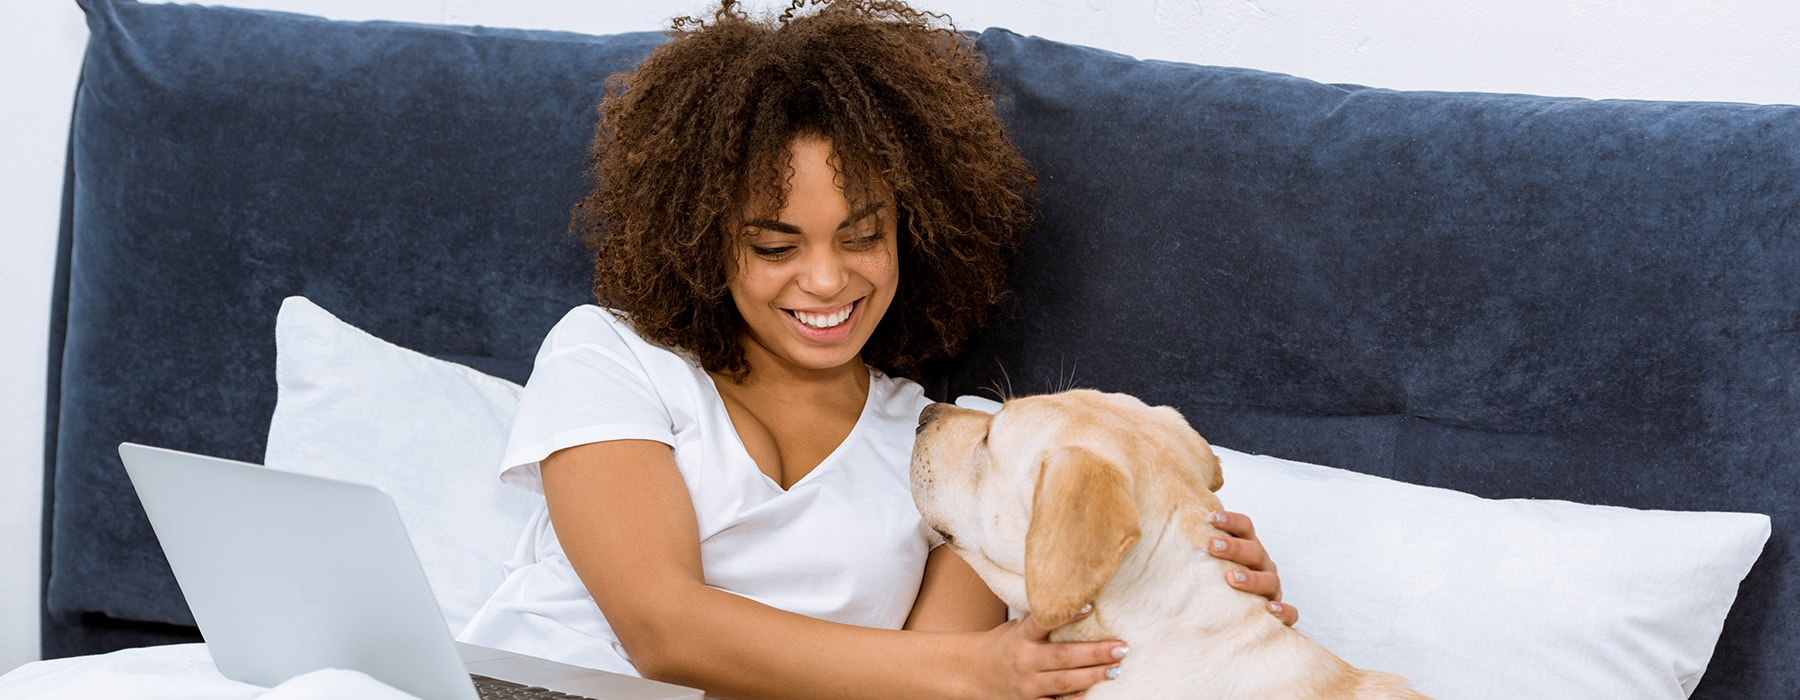 Woman holding he laptop and petting her dog on a bed